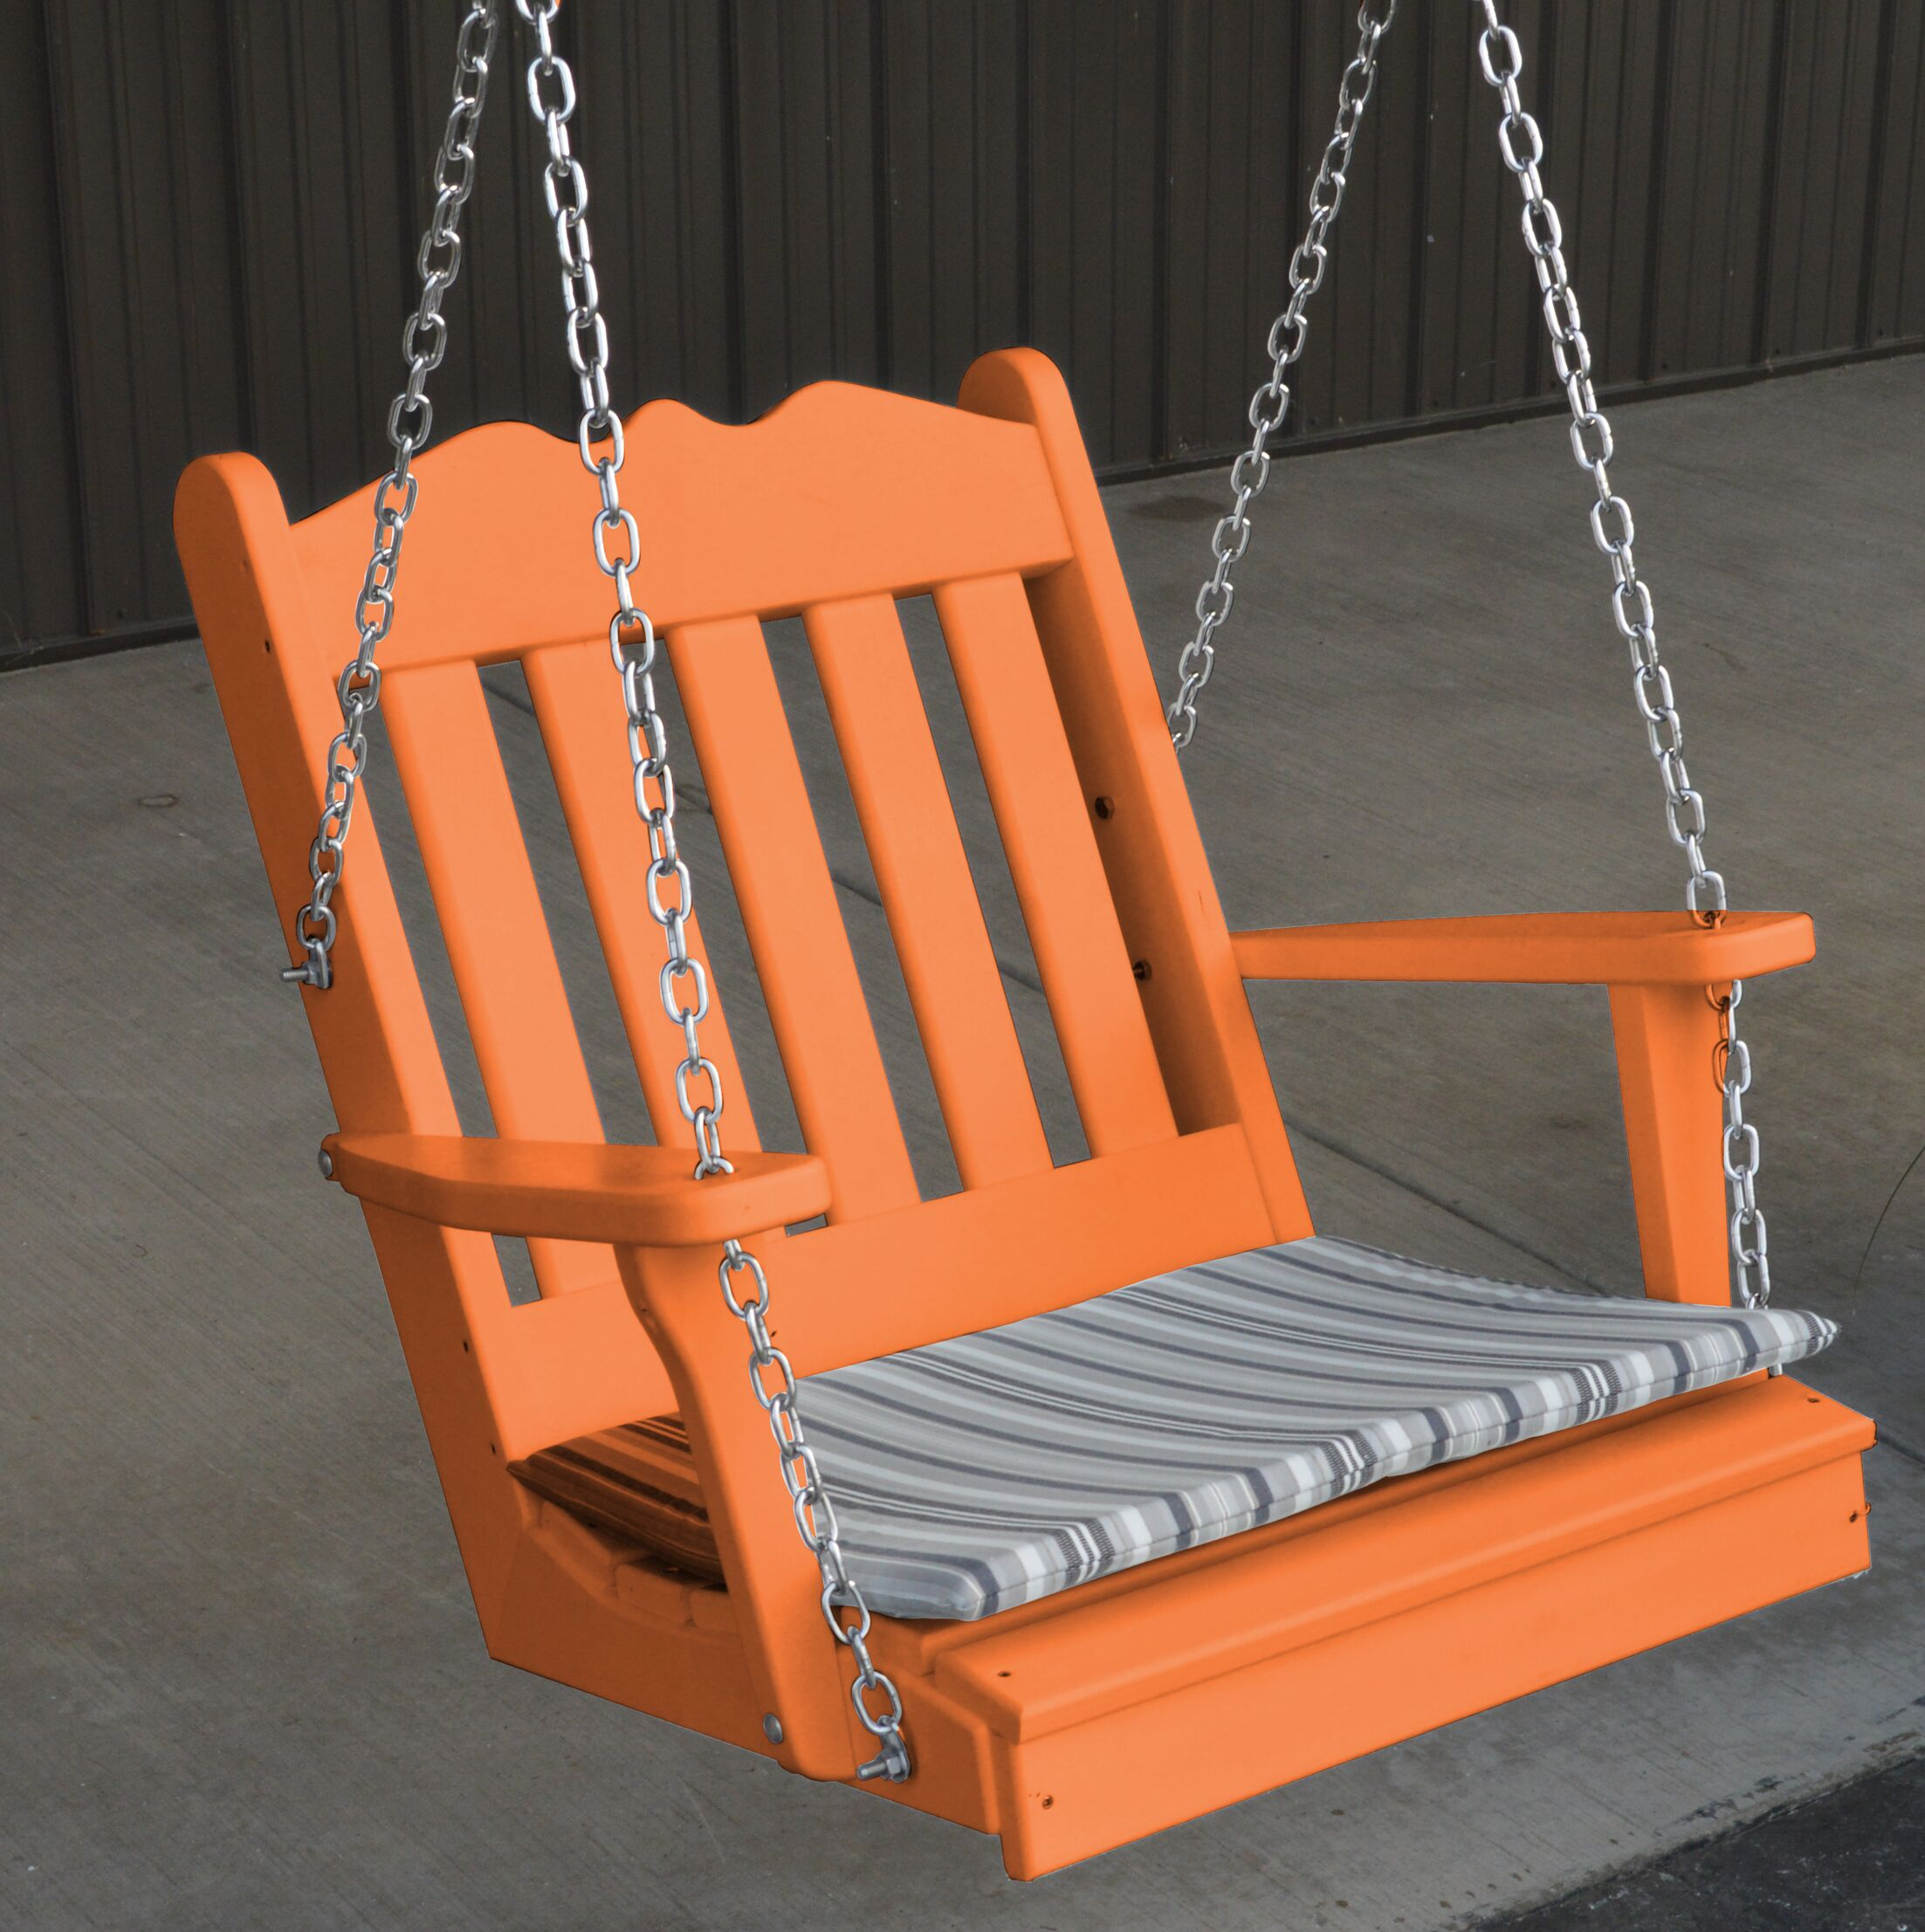 Pi Royal English Porch Swing Color: Orange